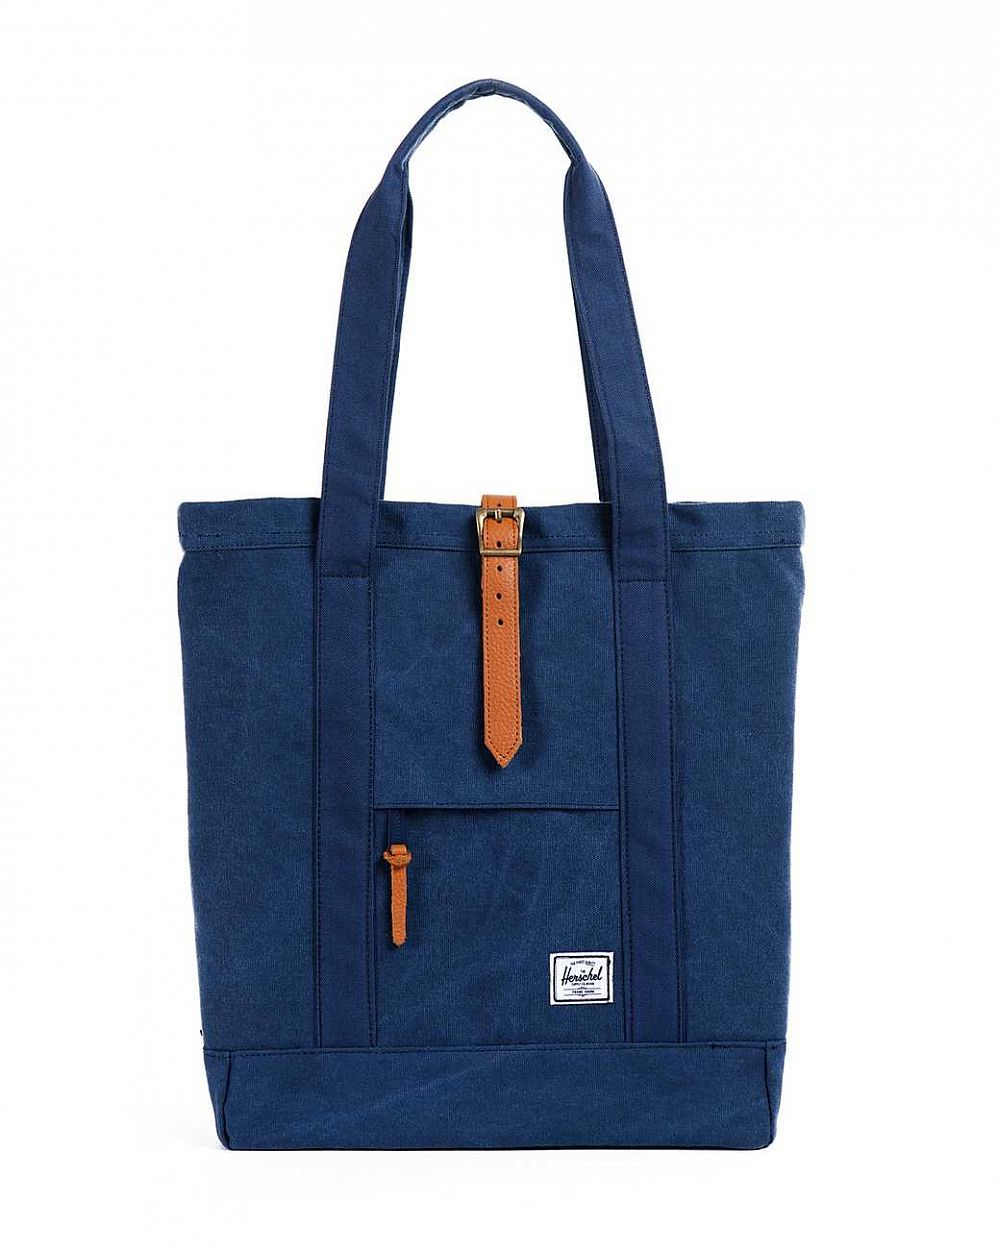 купить Сумка Herschel Market Canvas Washed Navy Navy в Москве